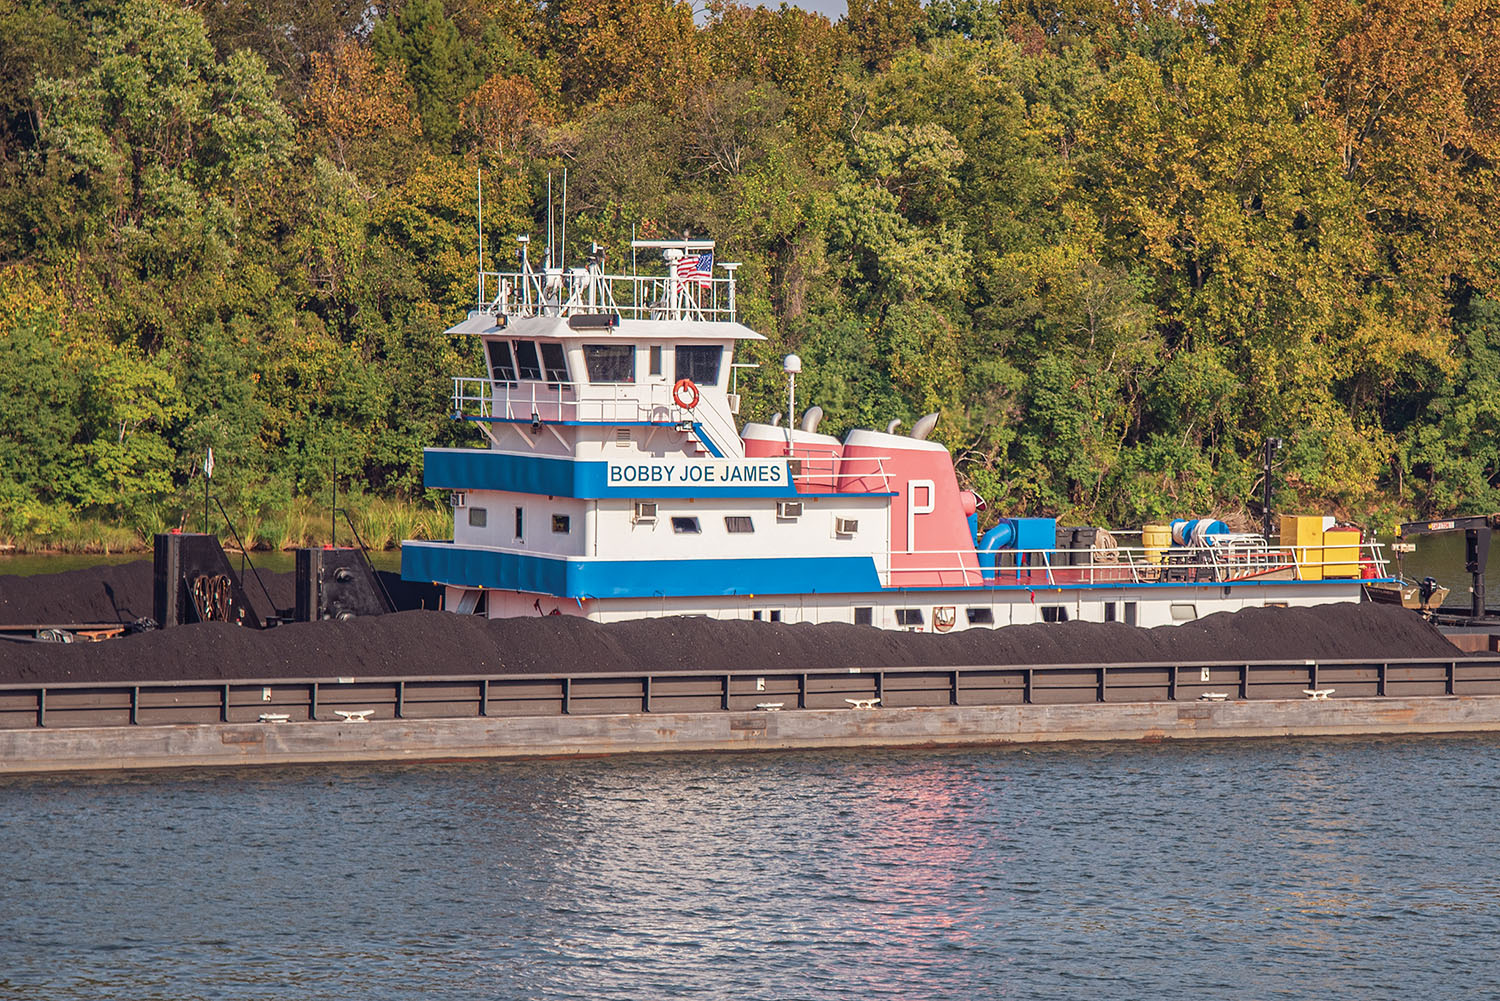 Pictured is the mv. Bobby Joe James coming through Demopolis, Ala. The vessel is named after a retired employee of Parker Towing Company; his wife, Vikki James, is a 20-year breast cancer survivor who volunteers her time working with the Relay for Life program. (Photo by Ford Nixon)